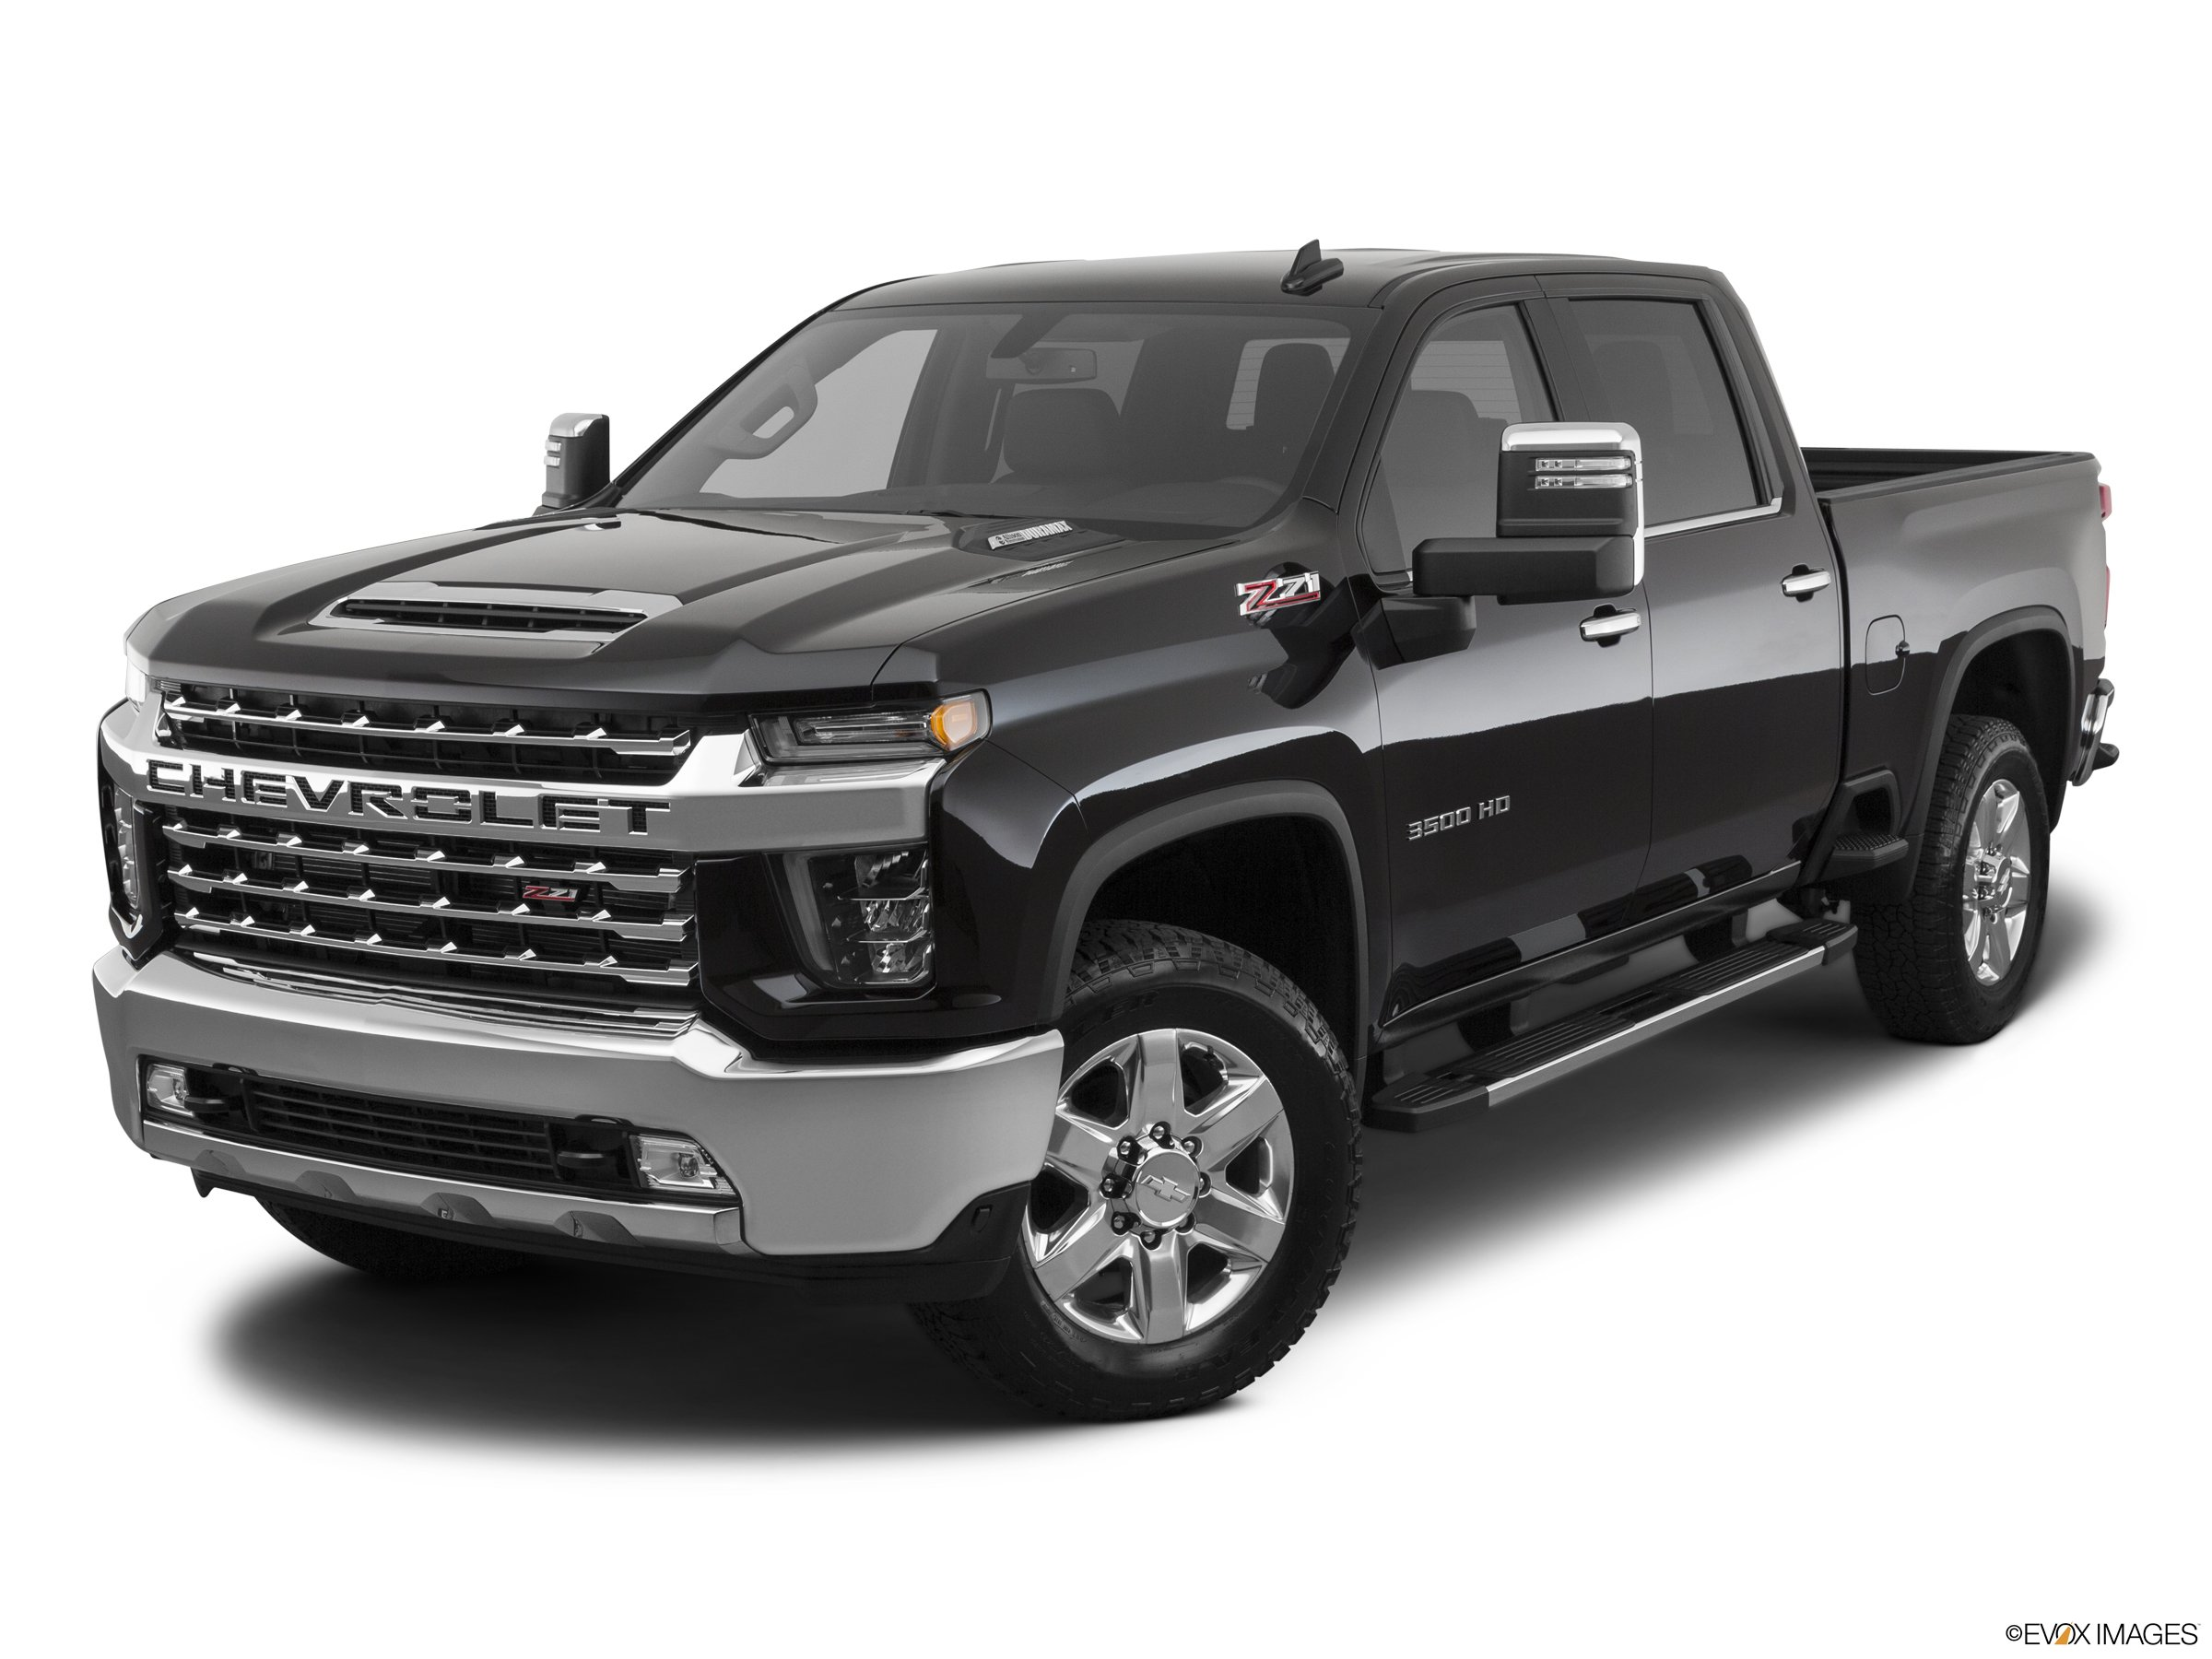 2020 Chevrolet Silverado 3500HD LTZ 4×4 pickup